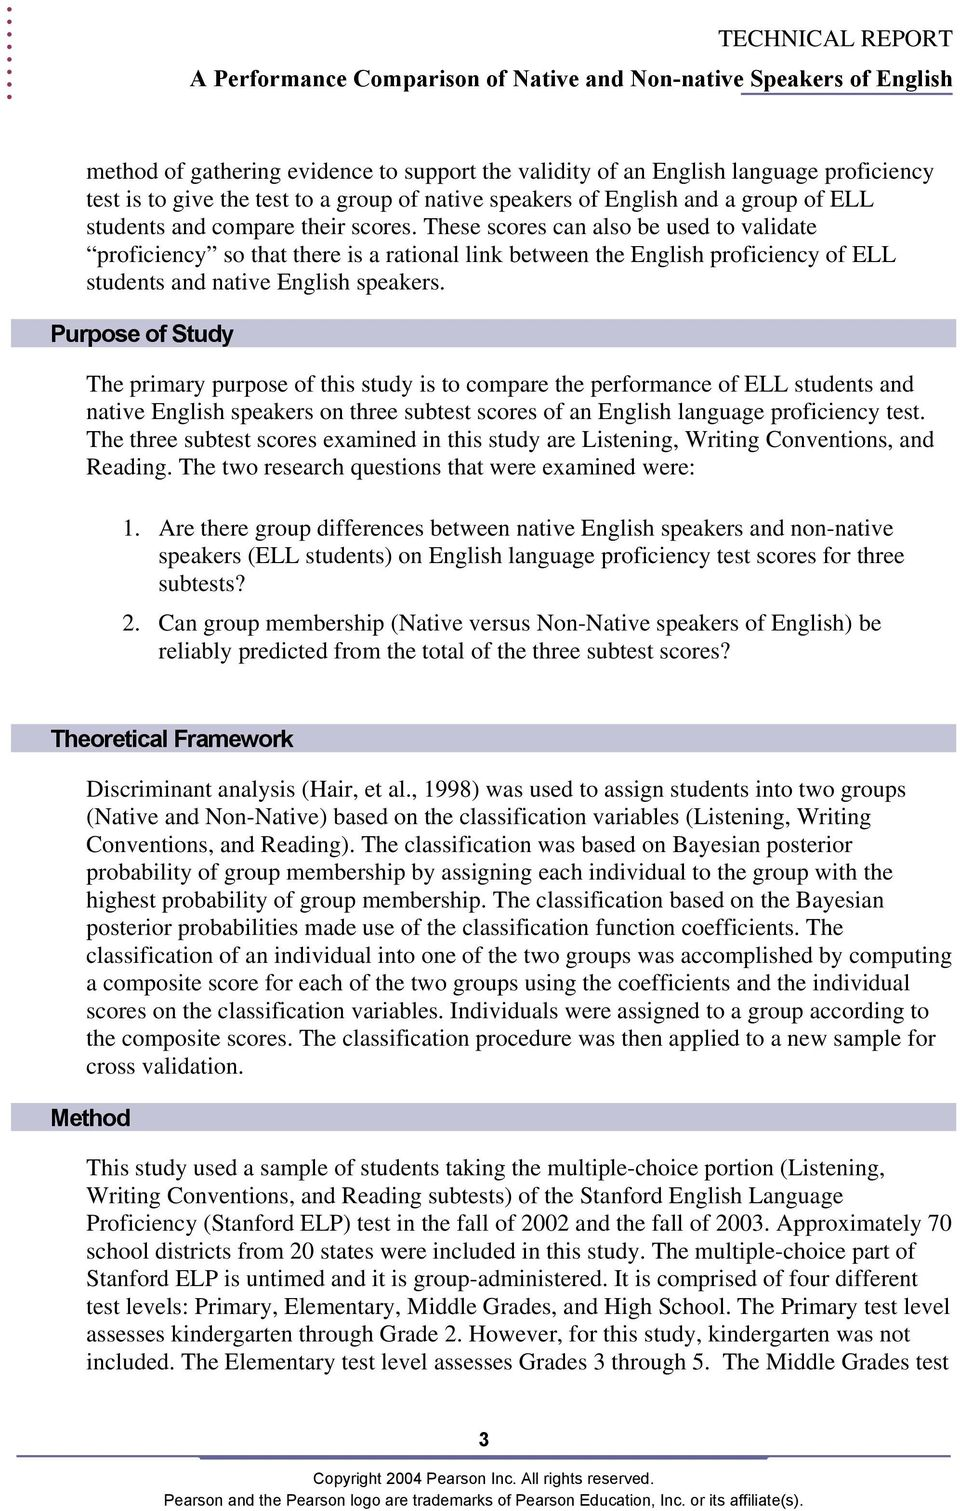 Purpose of Study The primary purpose of this study is to compare the performance of ELL students and native English speakers on three subtest scores of an English language proficiency test.